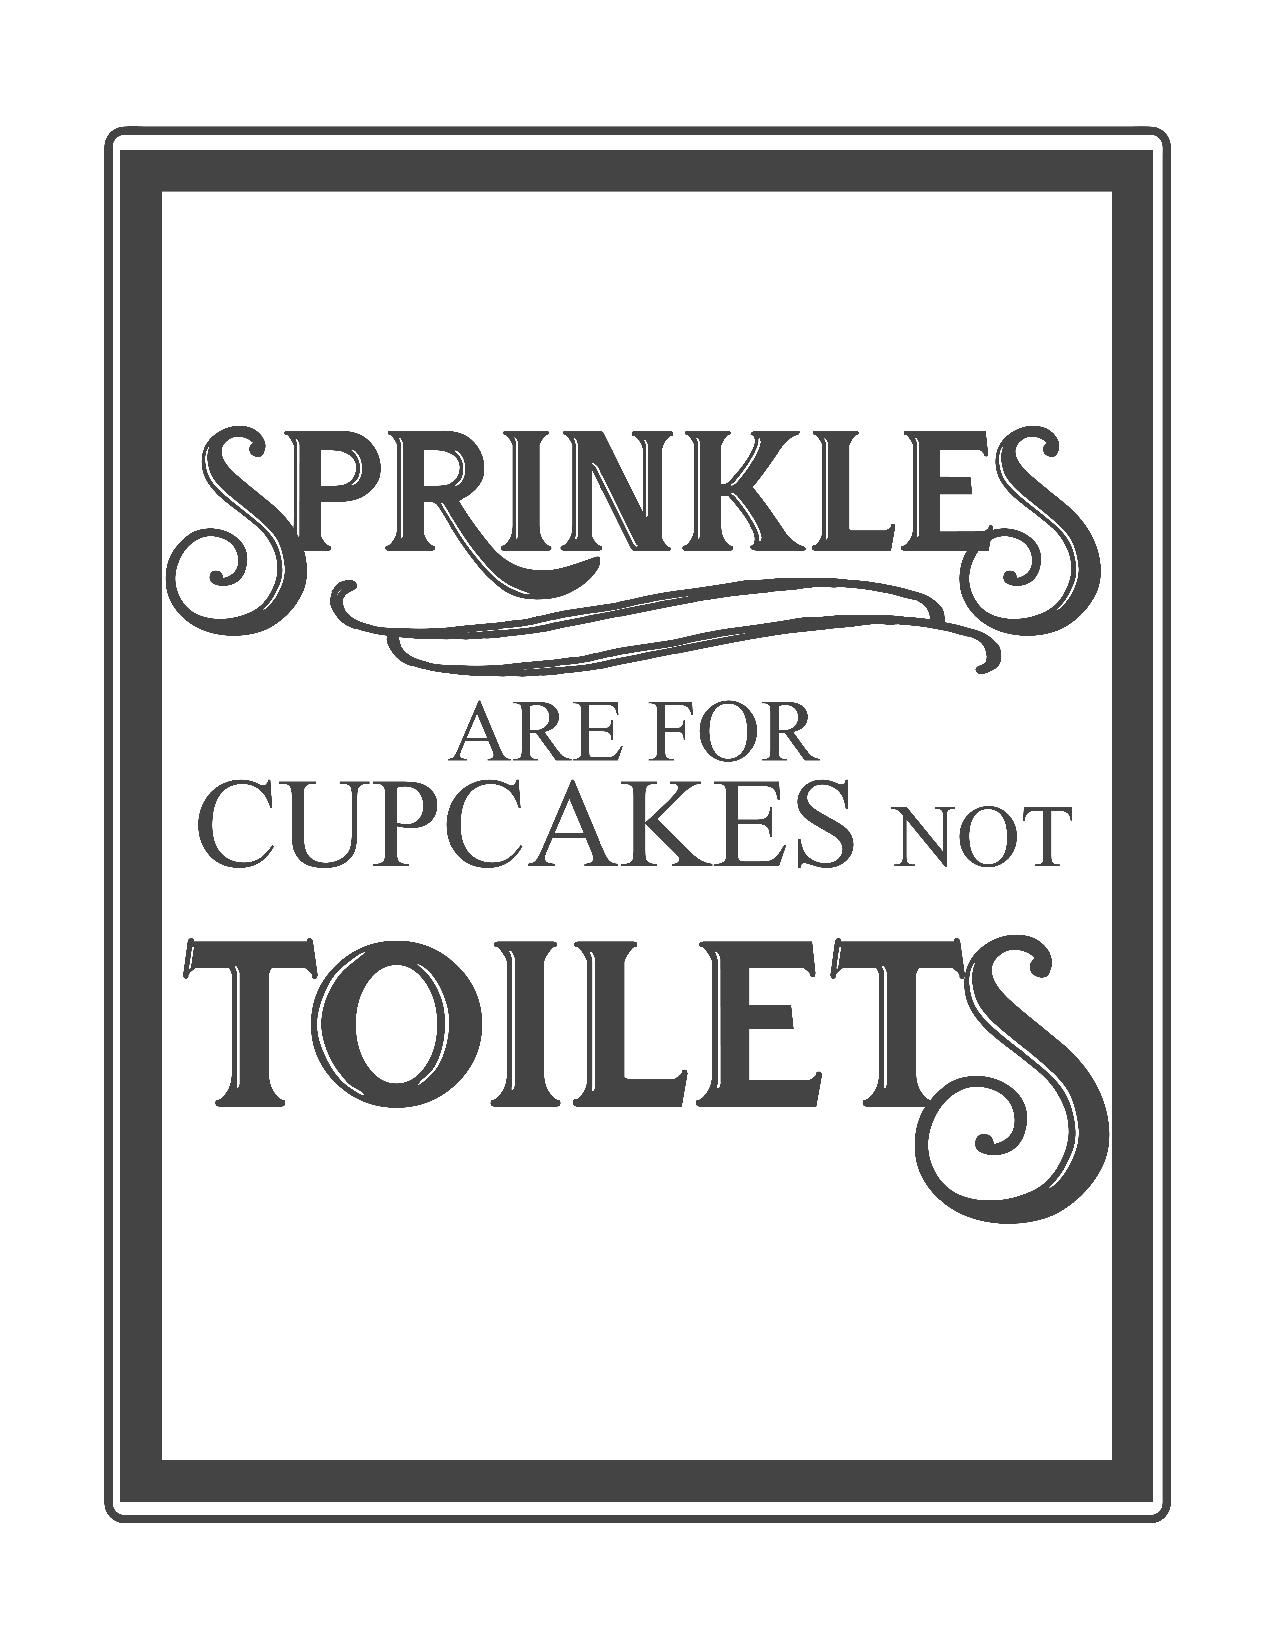 Free Vintage Bathroom Printables | Printables ** | Pinterest - Printable Video Surveillance Signs Free